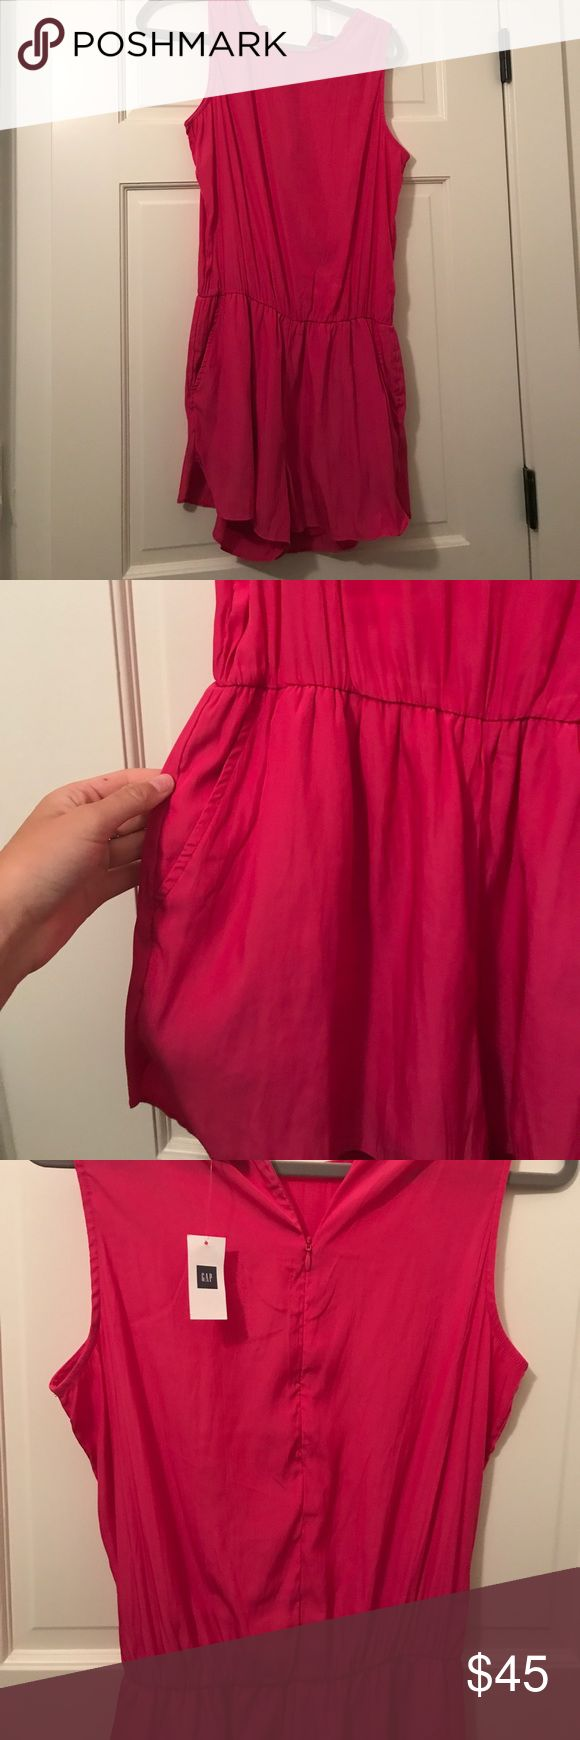 GAP pink women's romper Hot Pink women's zip up romper with pockets. NWT, light polyester fabric GAP Other